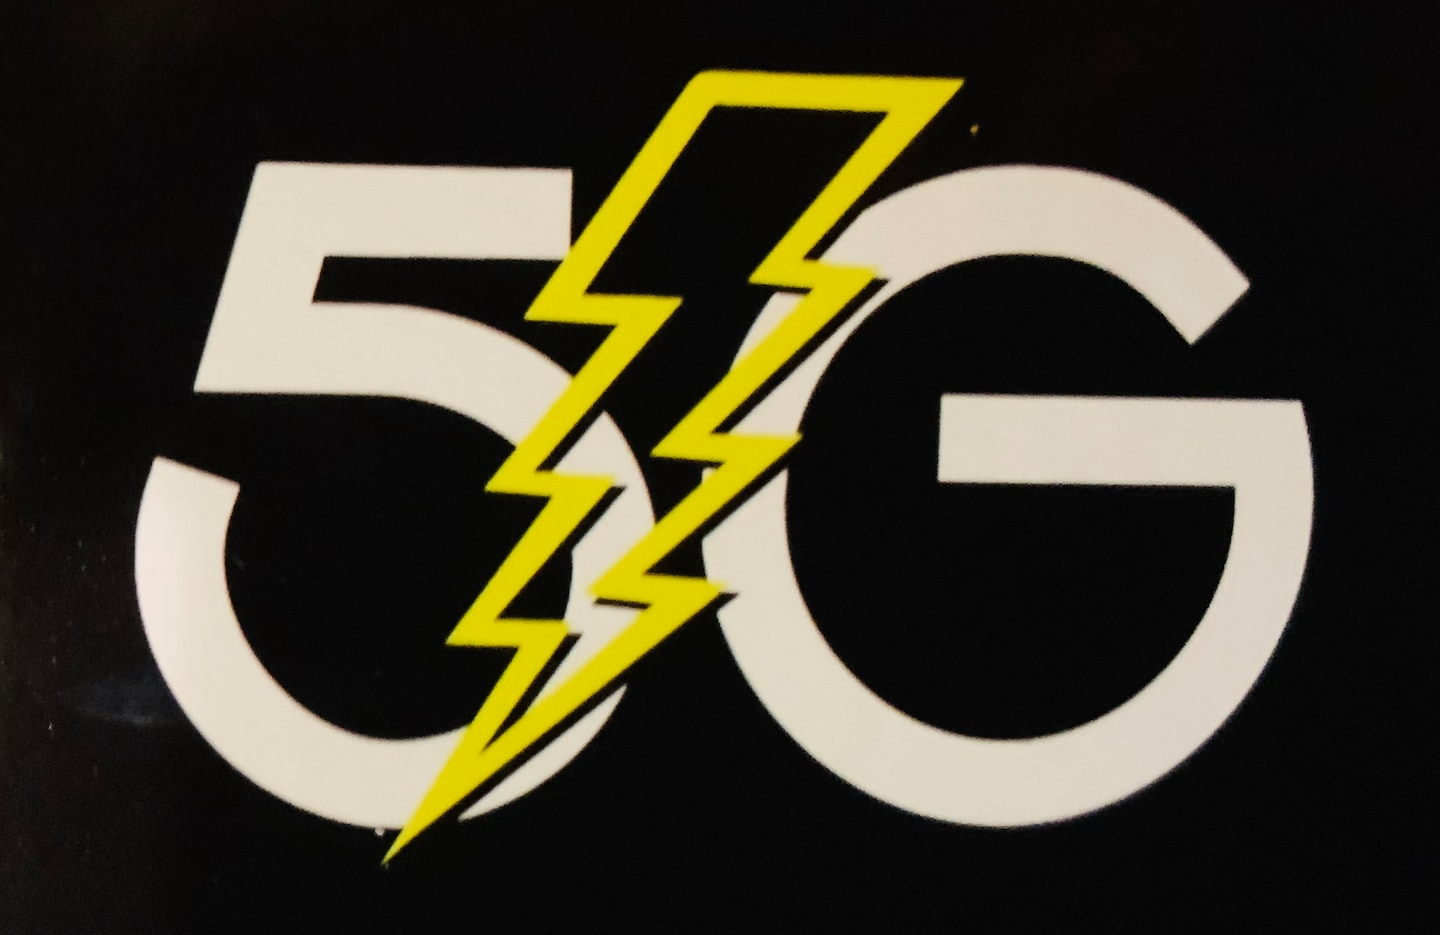 5G Electric LLC